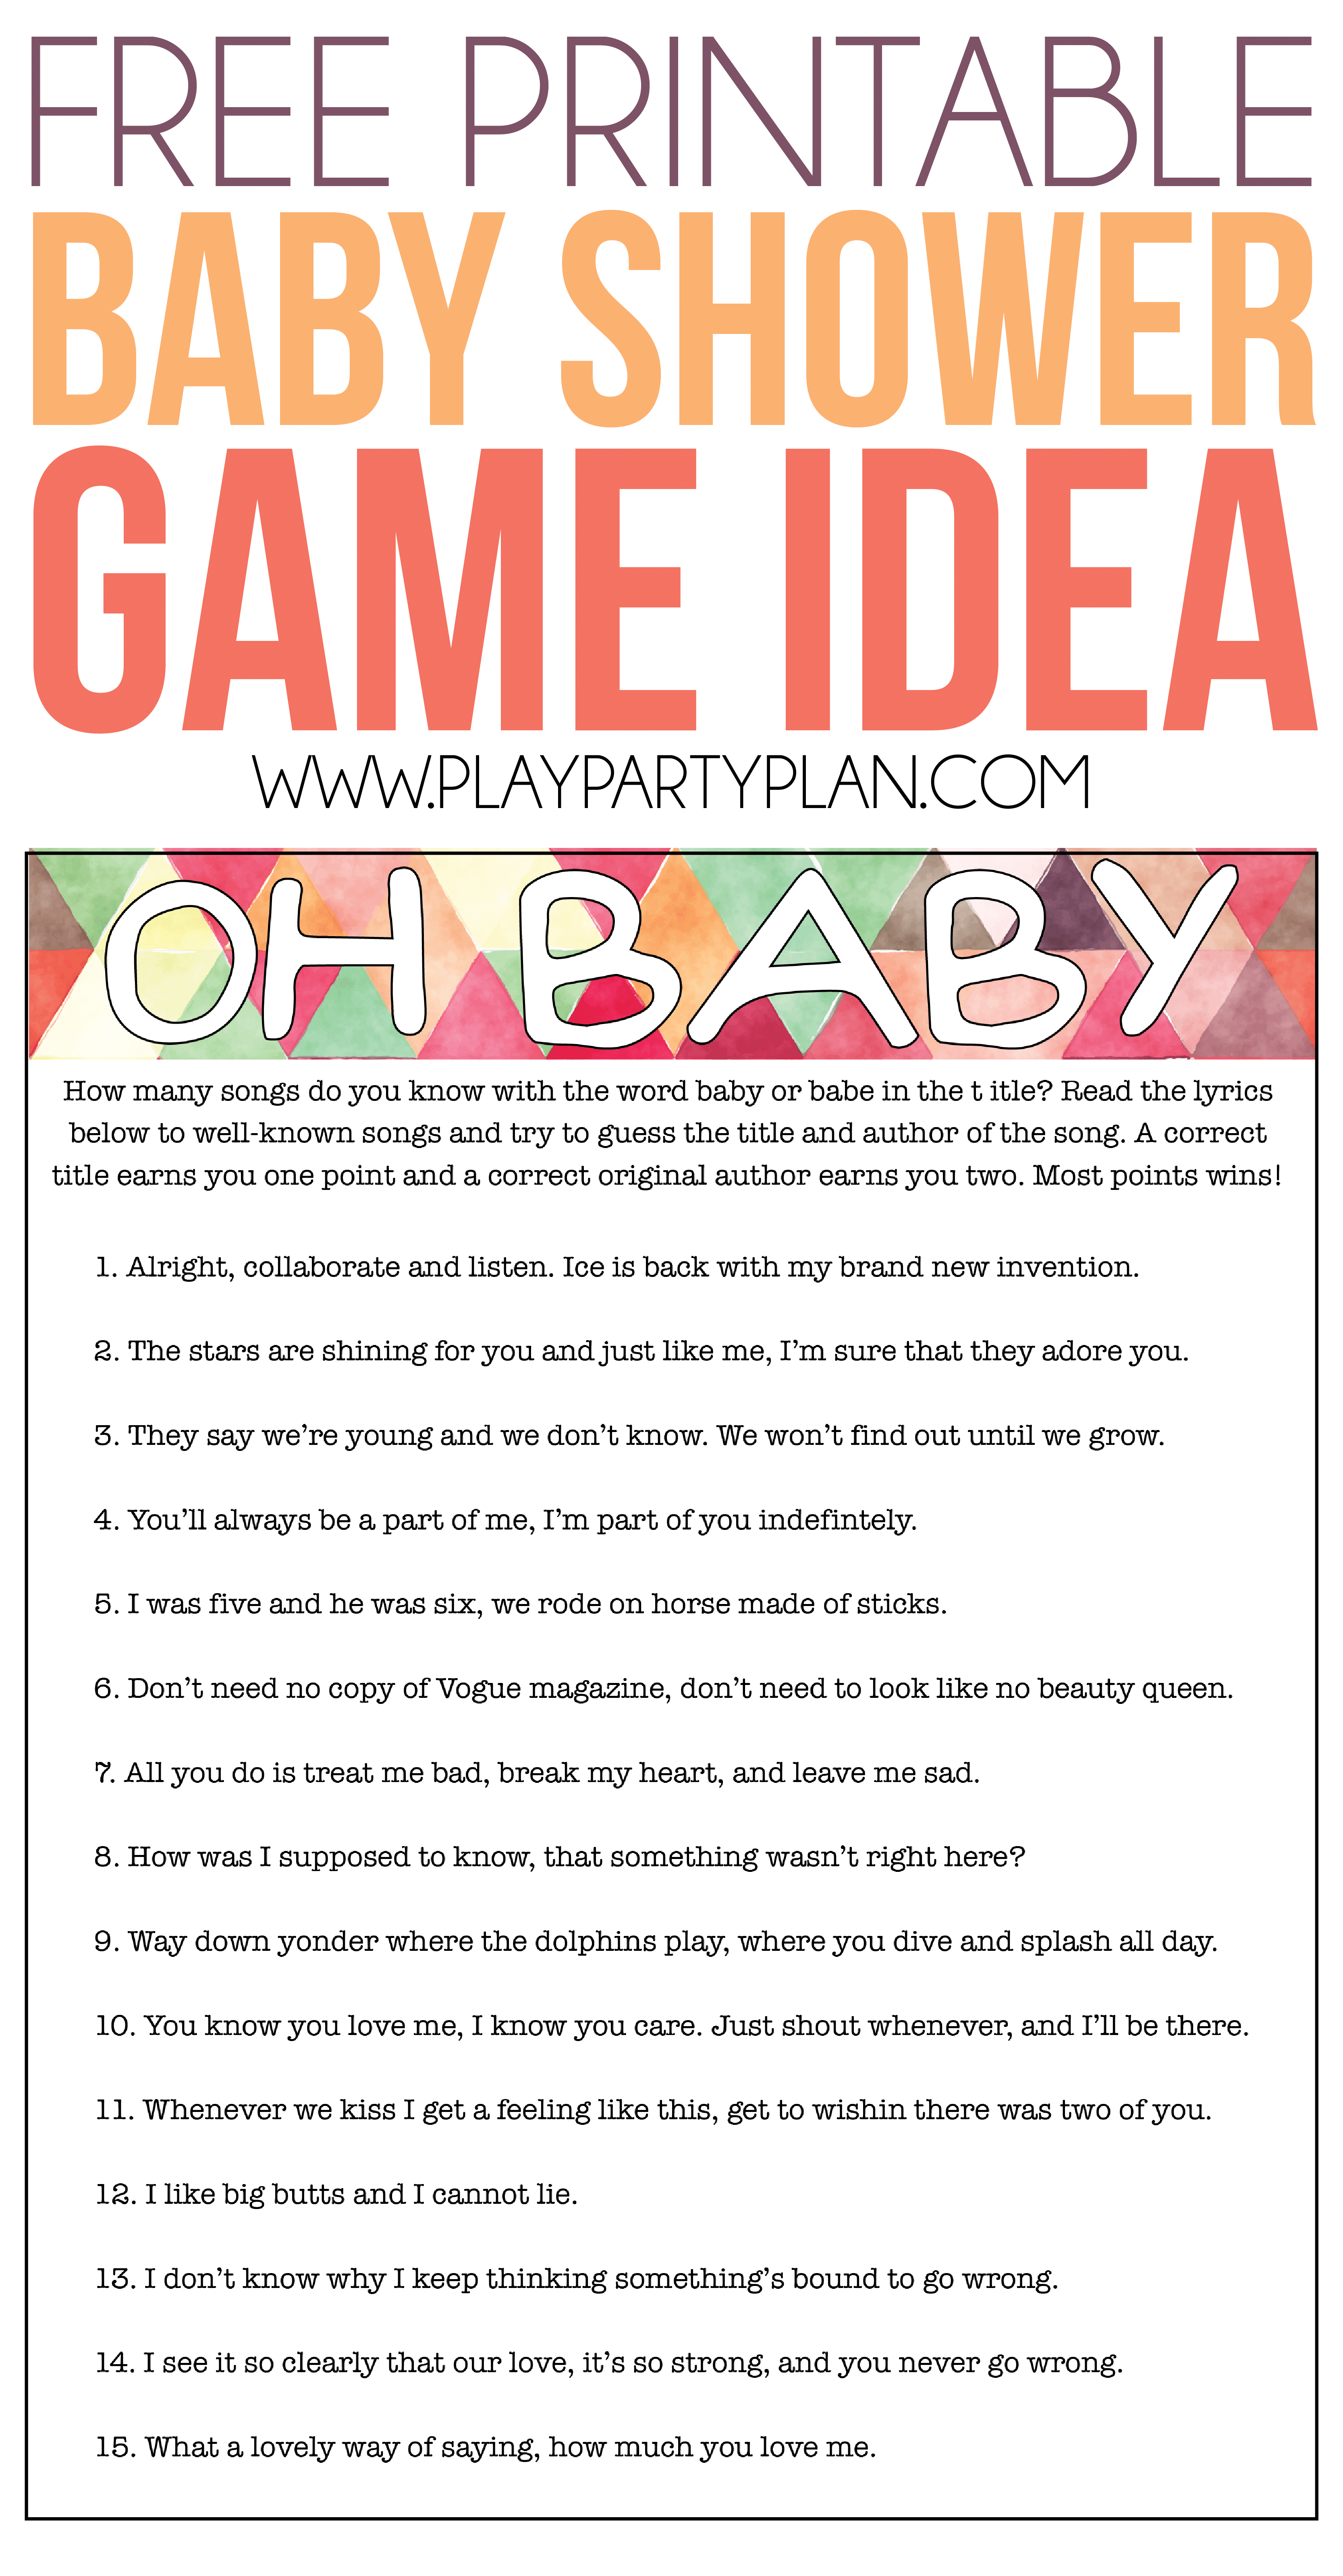 Oh Baby! Free Printable Baby Shower Game Expecting Moms Will Love - Free Printable Baby Shower Games